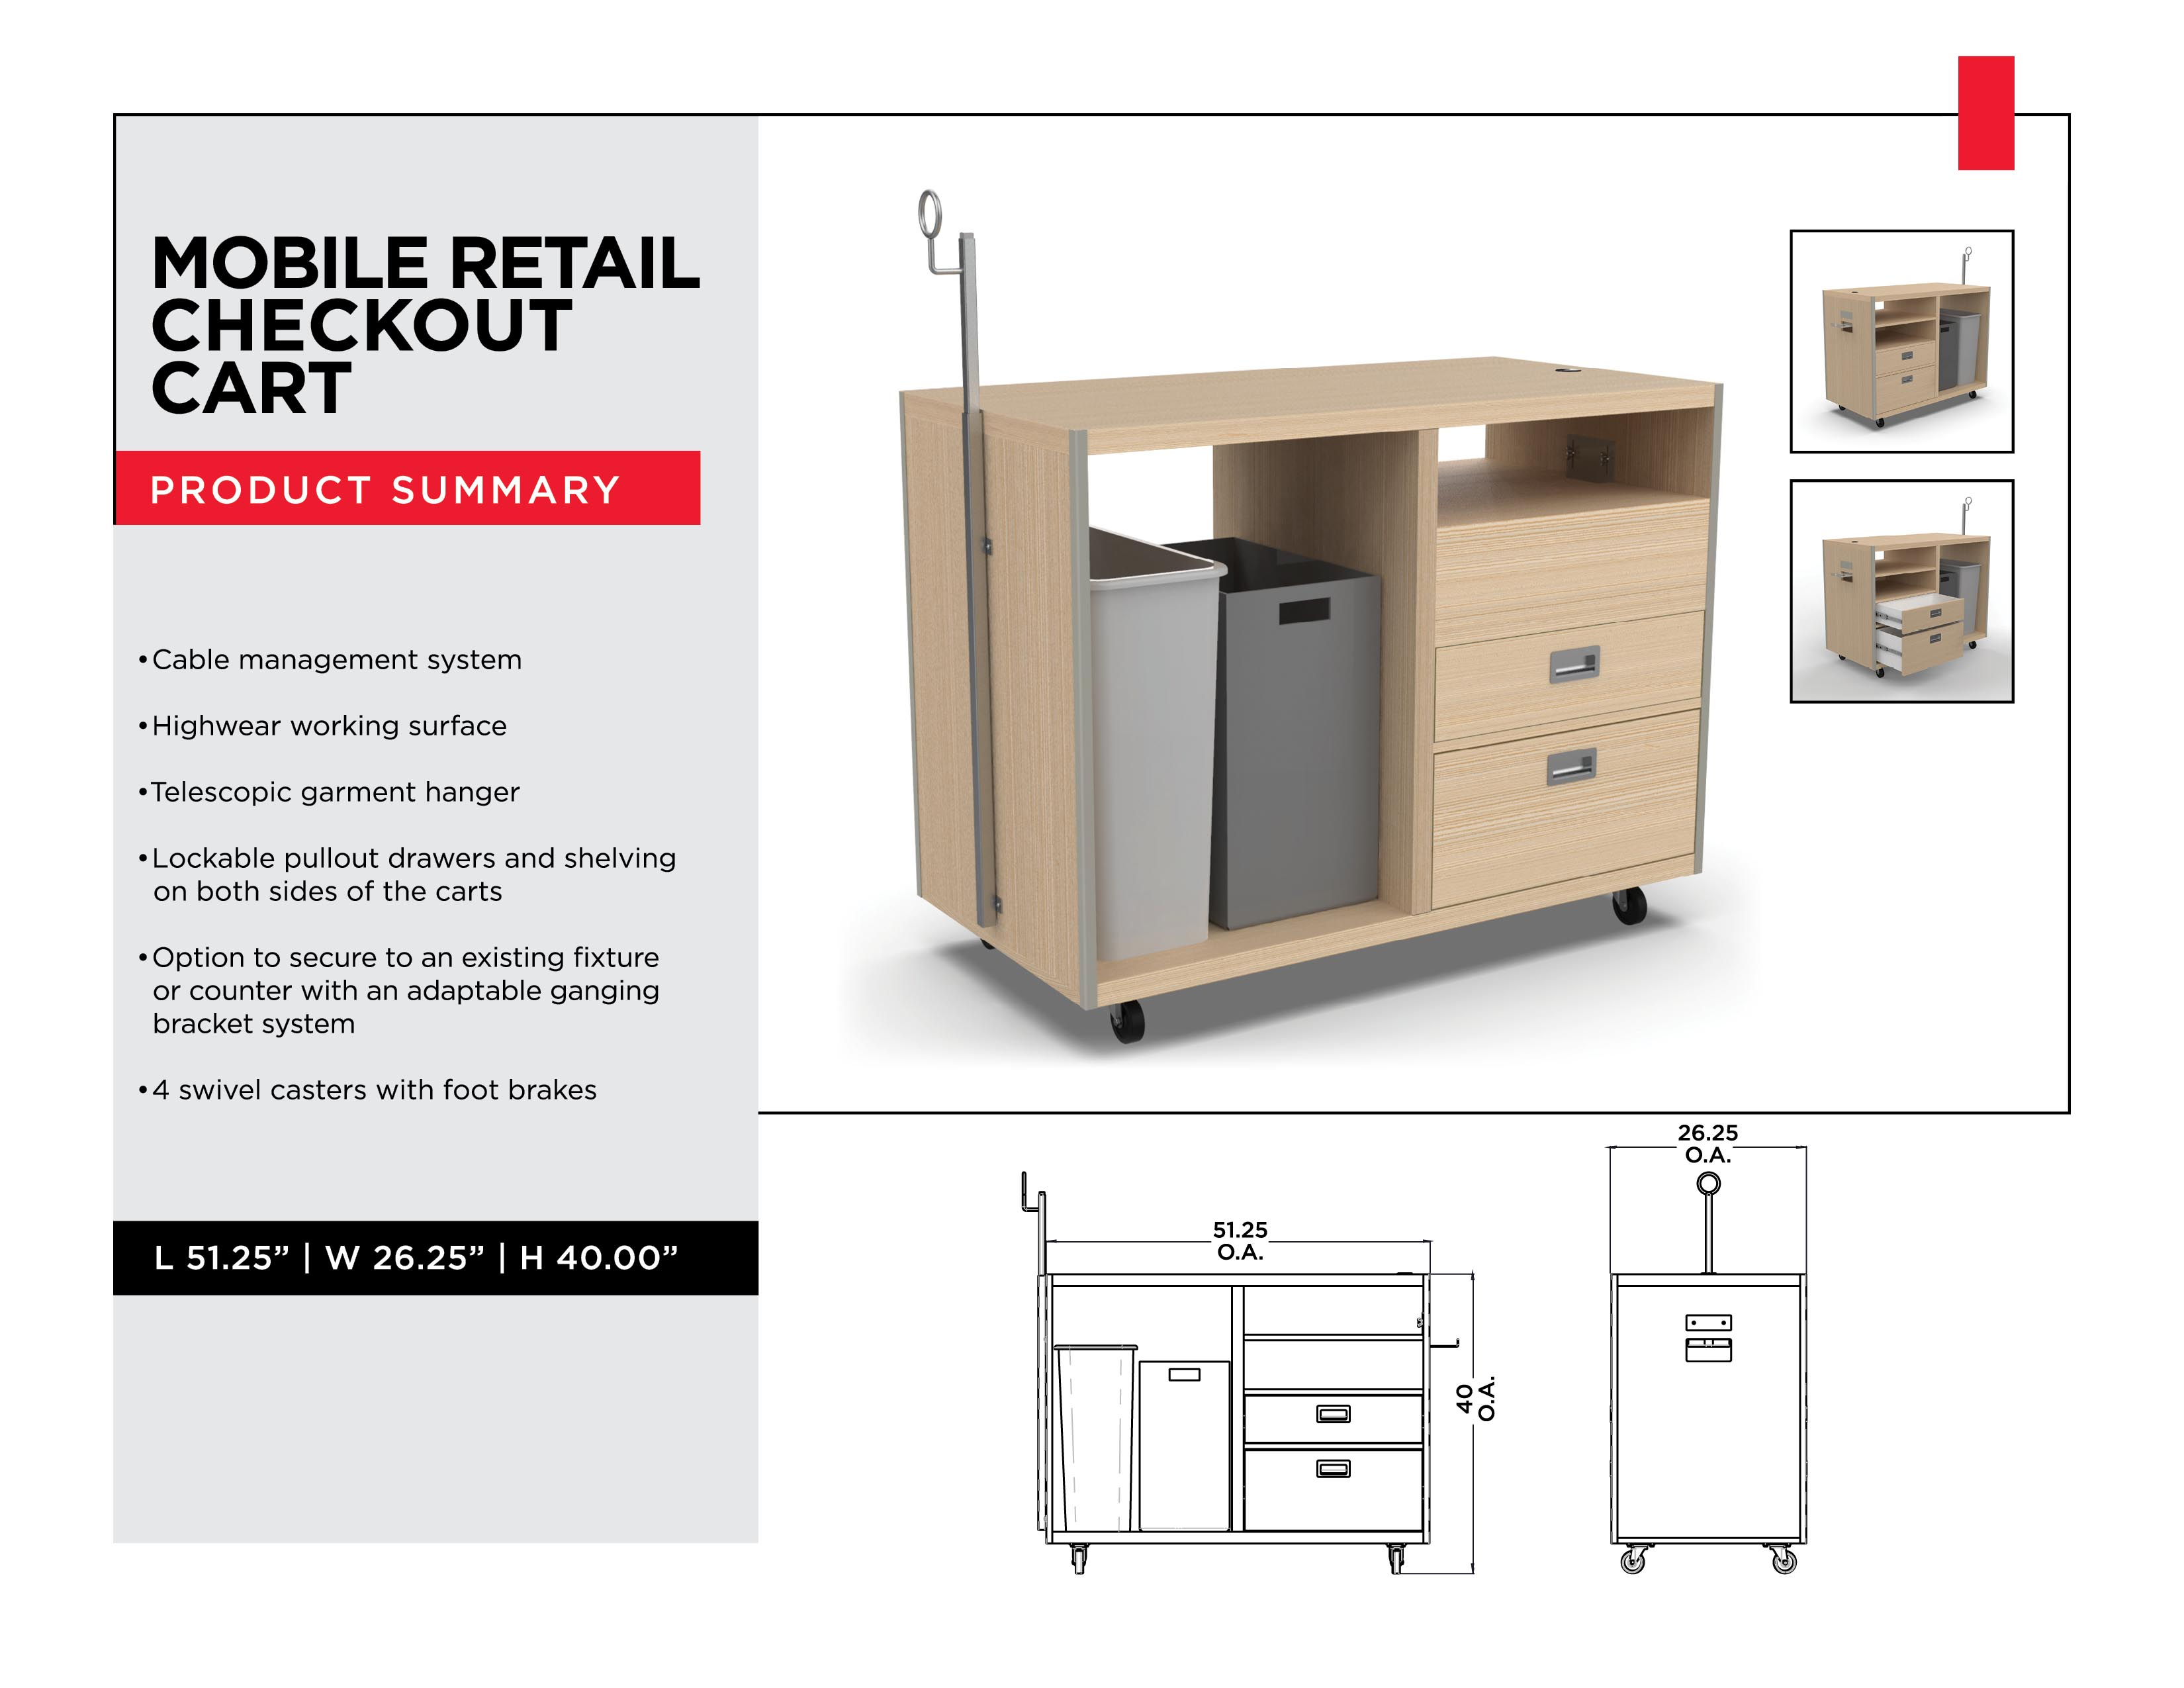 Retail Display Solutions: Mobile Retail Checkout Cart